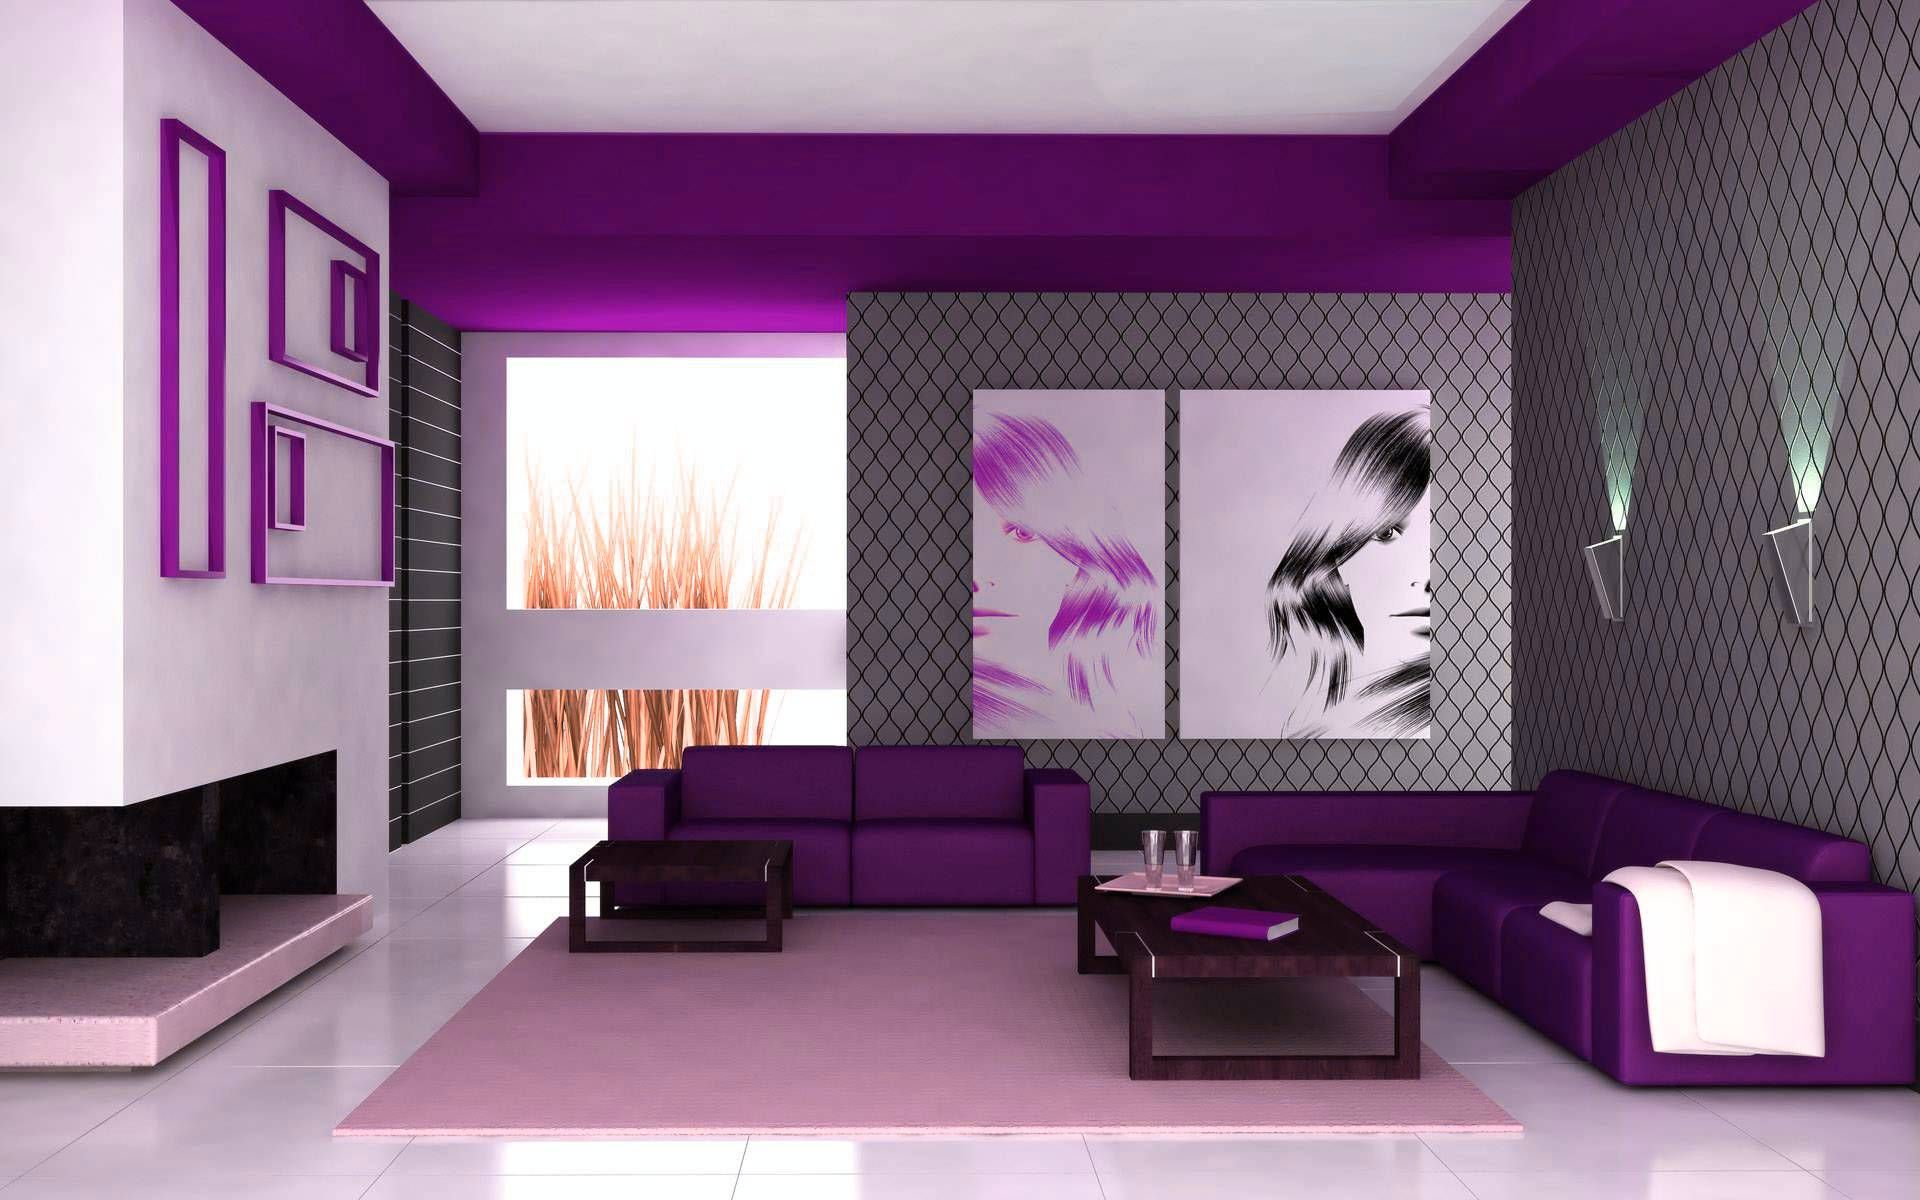 House interior design images hd